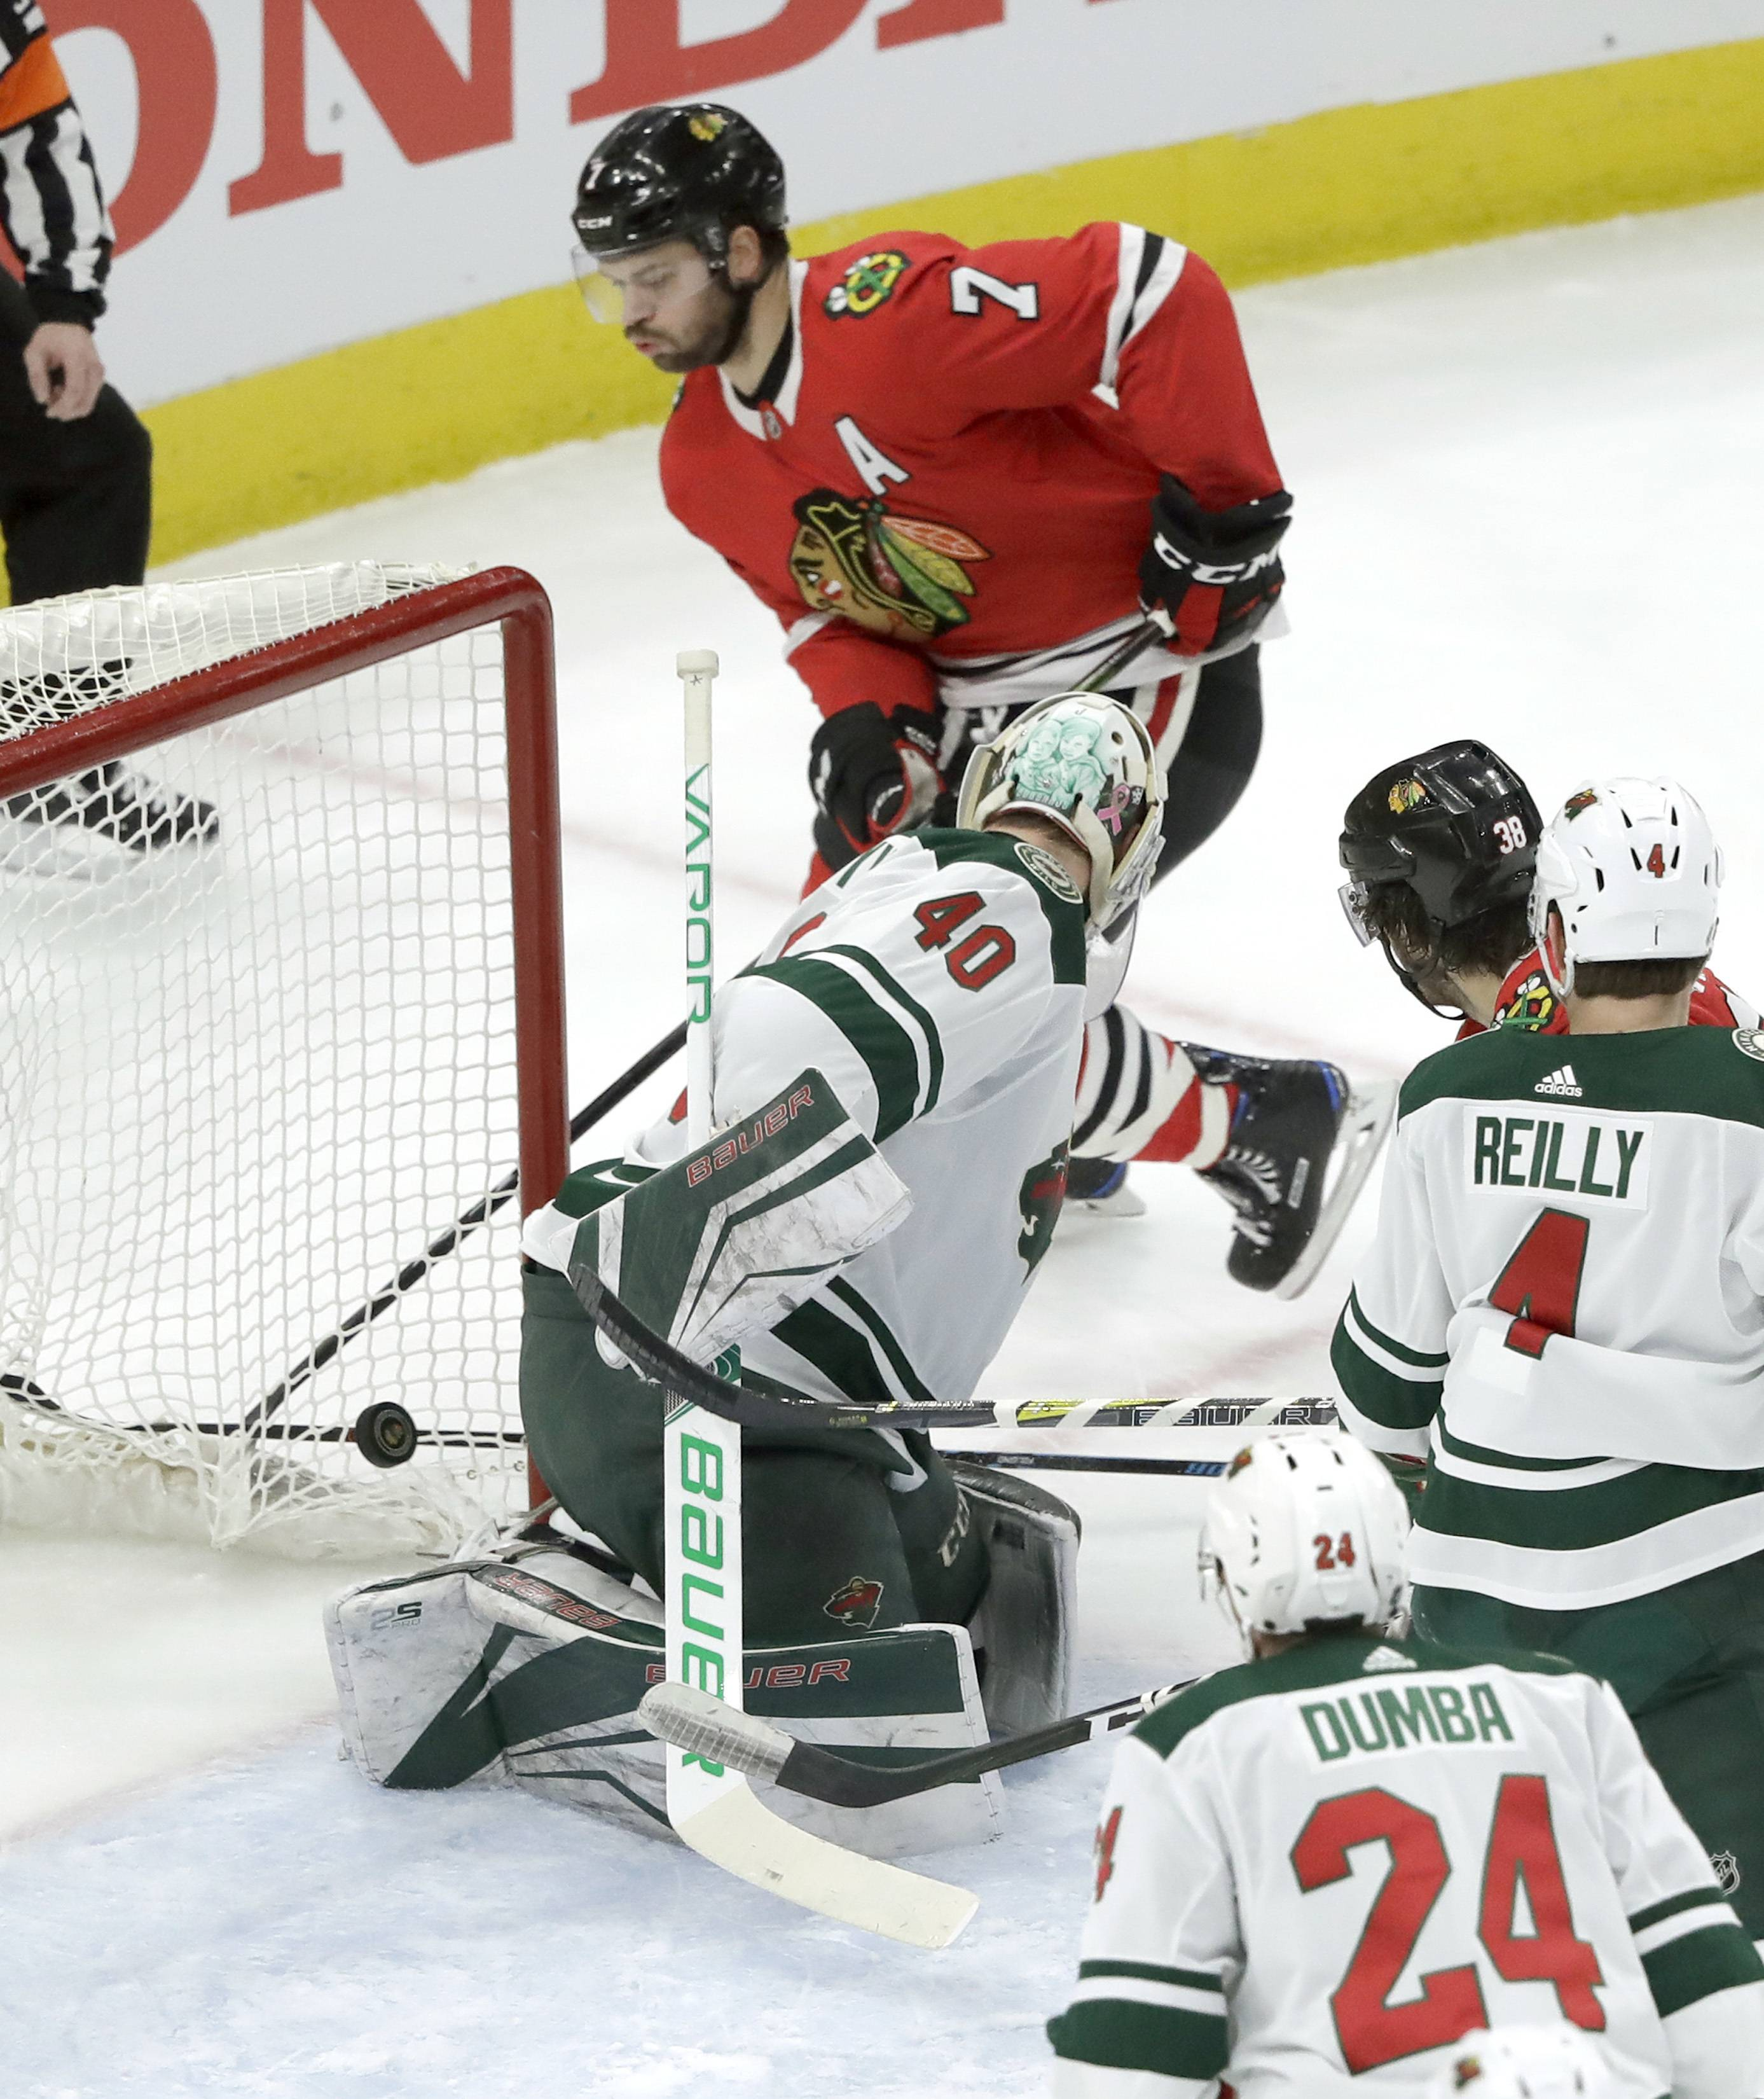 Blackhawks' Brent Seabrook (7) watches his shot score past Minnesota Wild goaltender Devan Dubnyk (40) during the first period on Wednesday, in Chicago.